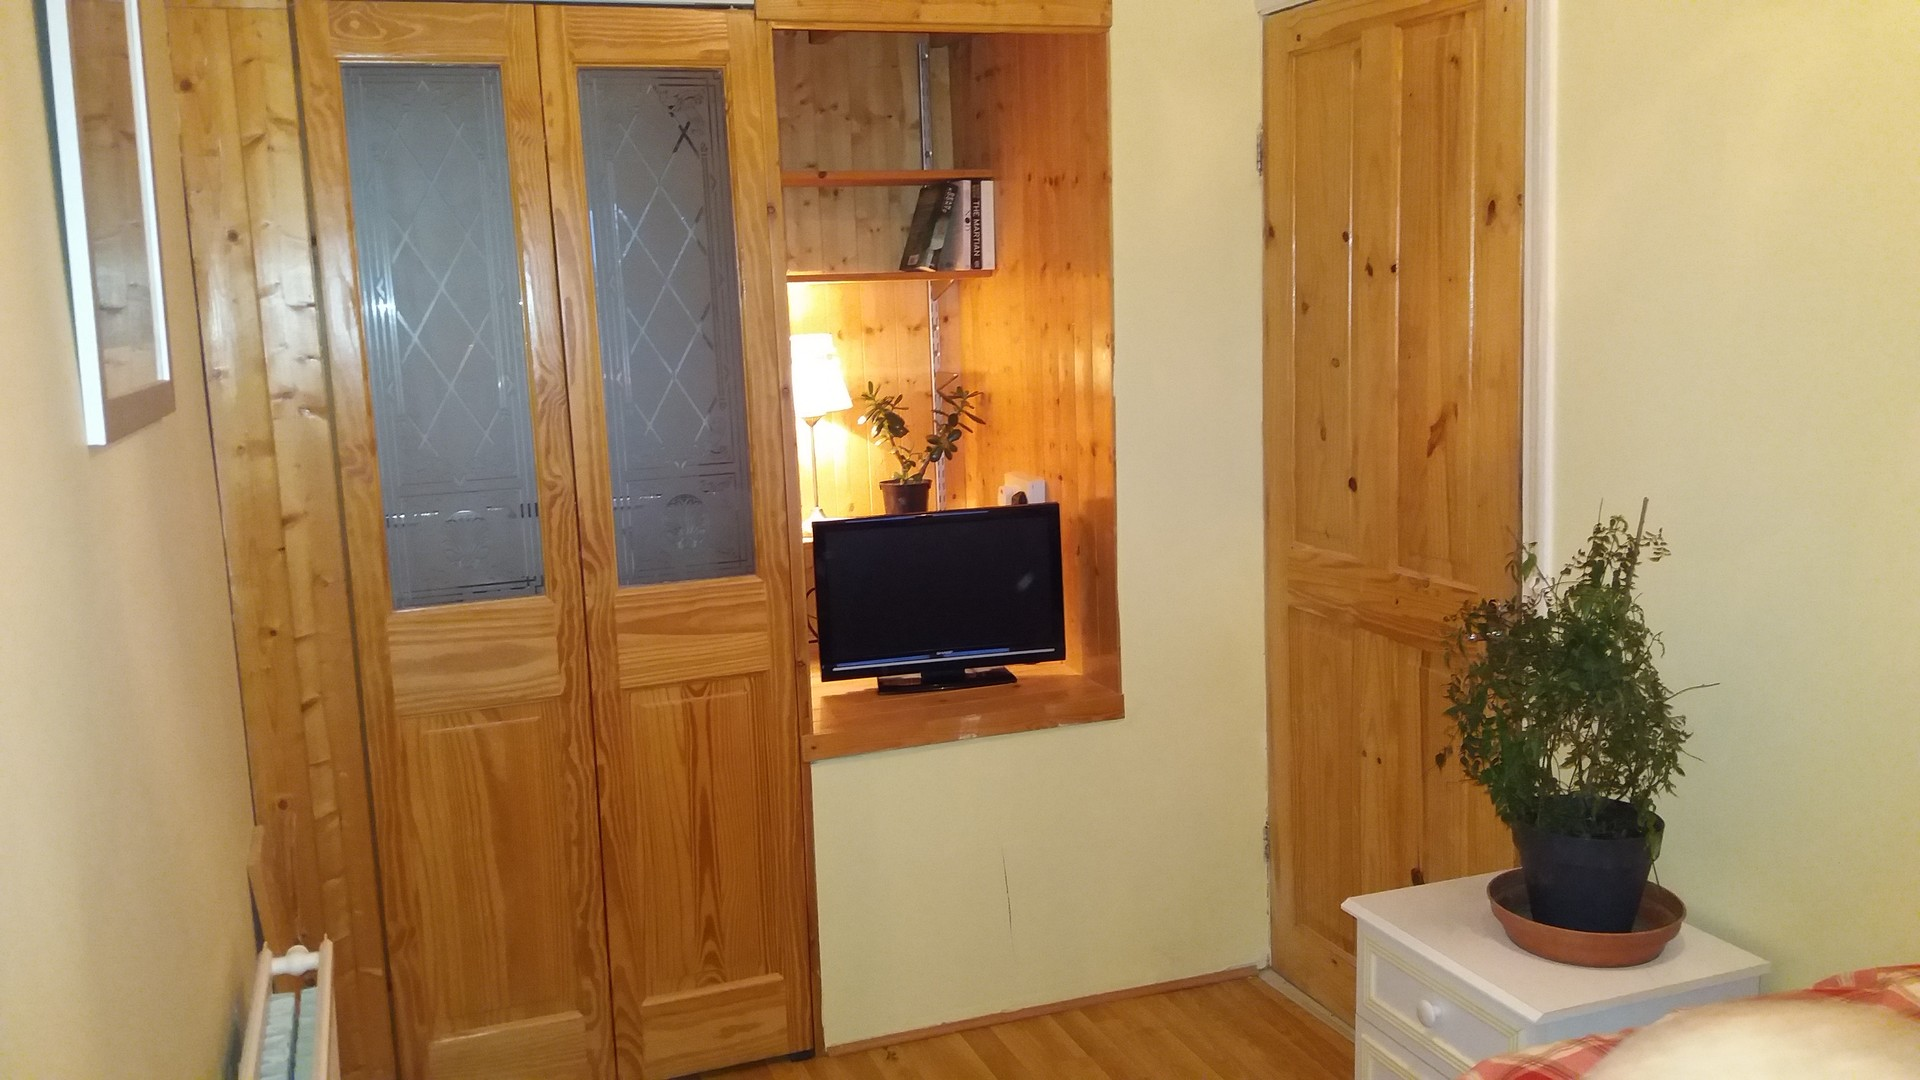 Relaxing happy clean house in convenient location, lovely room o